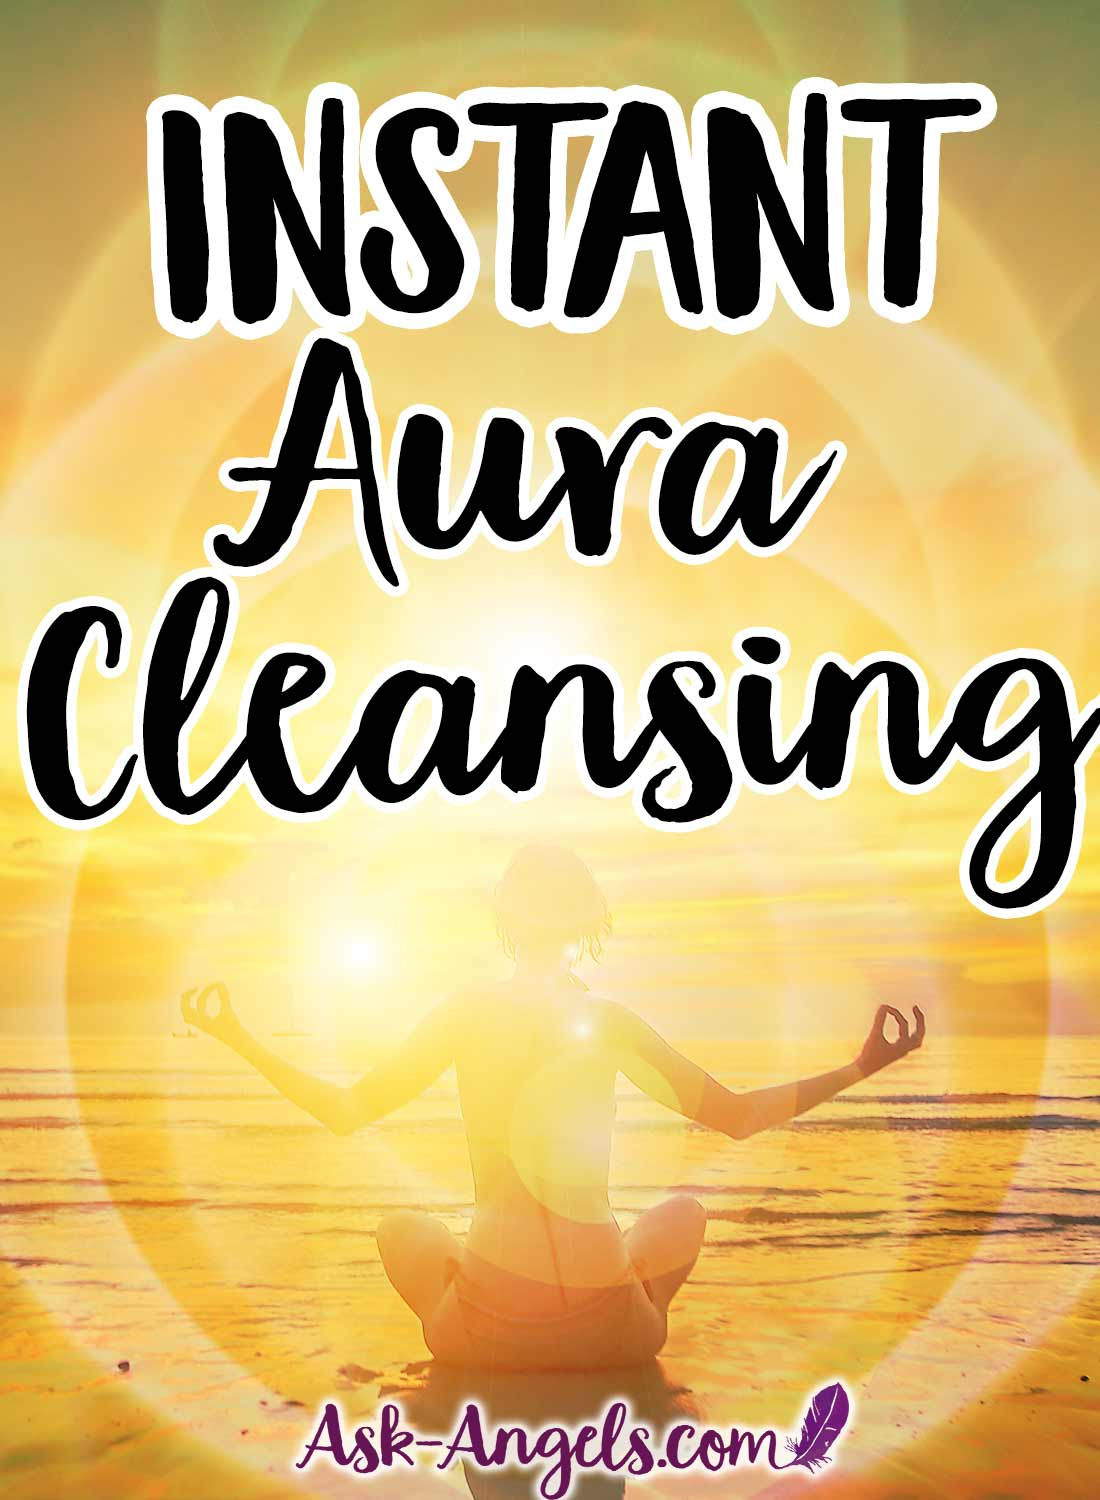 Instant Aura Cleansing - A Powerful Technique to Cleanse and Uplift Your Aura Now!